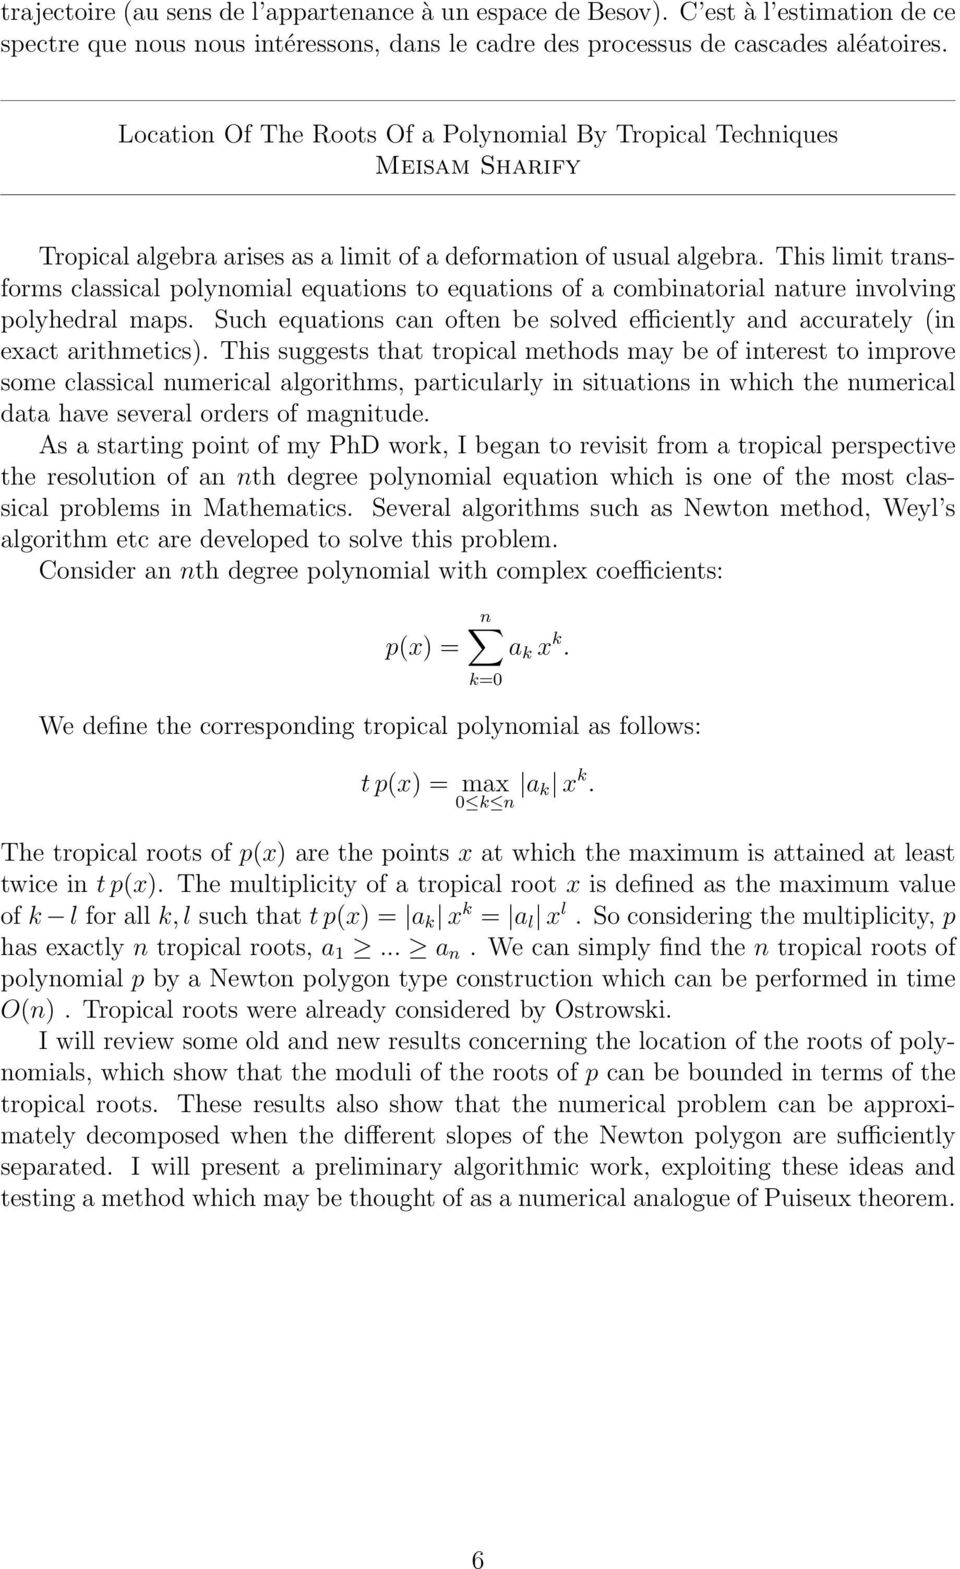 This limit transforms classical polynomial equations to equations of a combinatorial nature involving polyhedral maps.